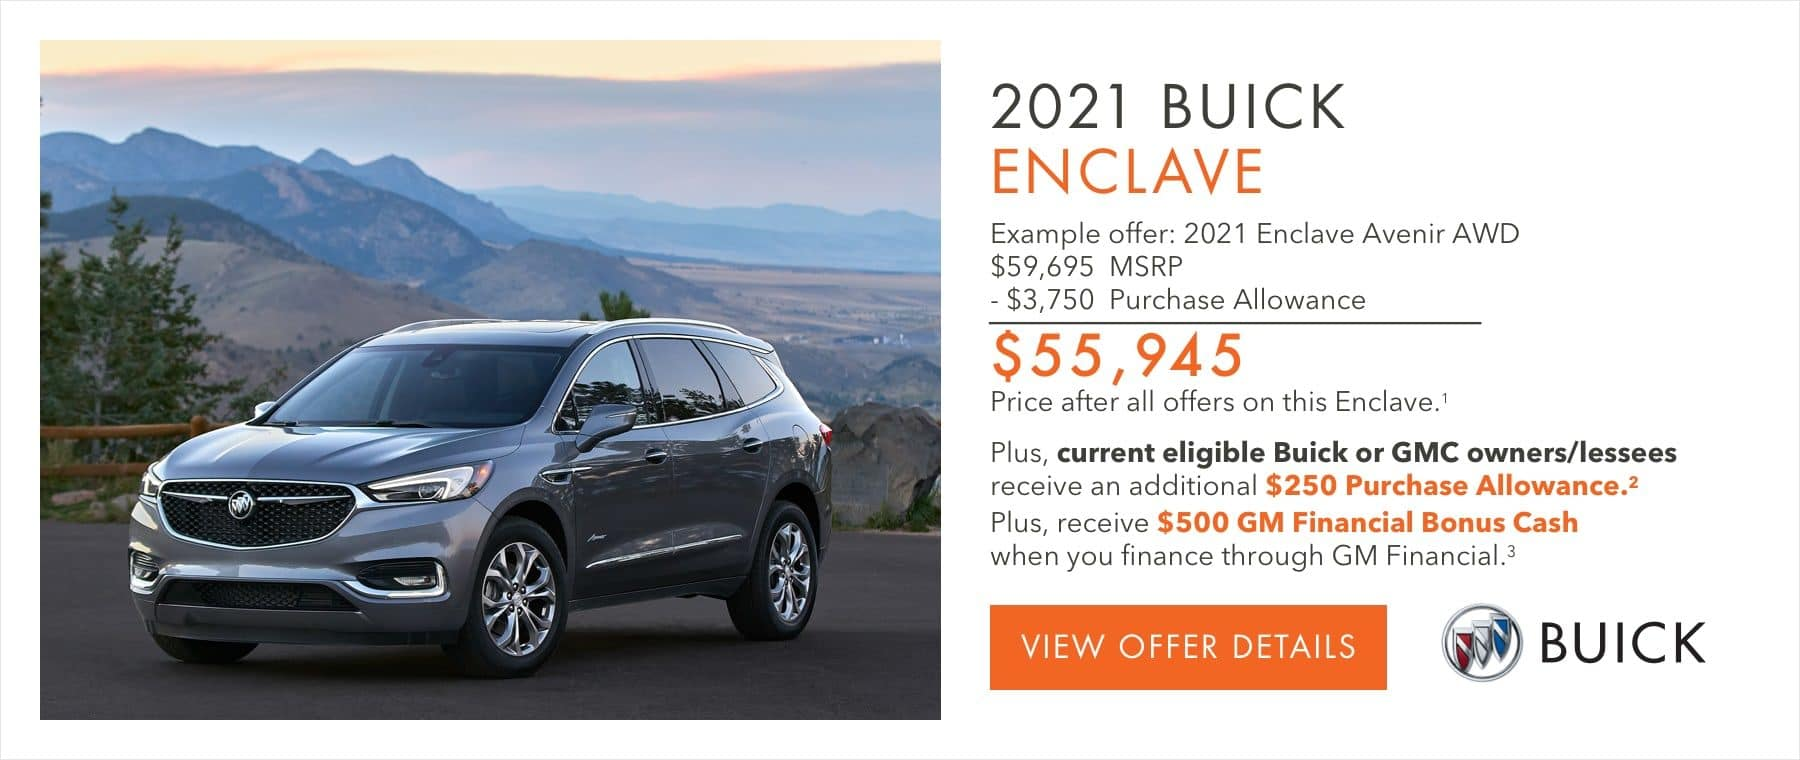 EXAMPLE OFFER: 2021 ENCLAVE AVENIR AWD $59,695 MSRP -$3,750 Purchase Allowance $55,945 Price after all offers on this Enclave.1 Plus, current eligible Buick or GMC owners/lessees receive an additional $250 Purchase Allowance.2 Plus, receive $500 GM Financial Bonus Cash when you finance through GM Financial.3